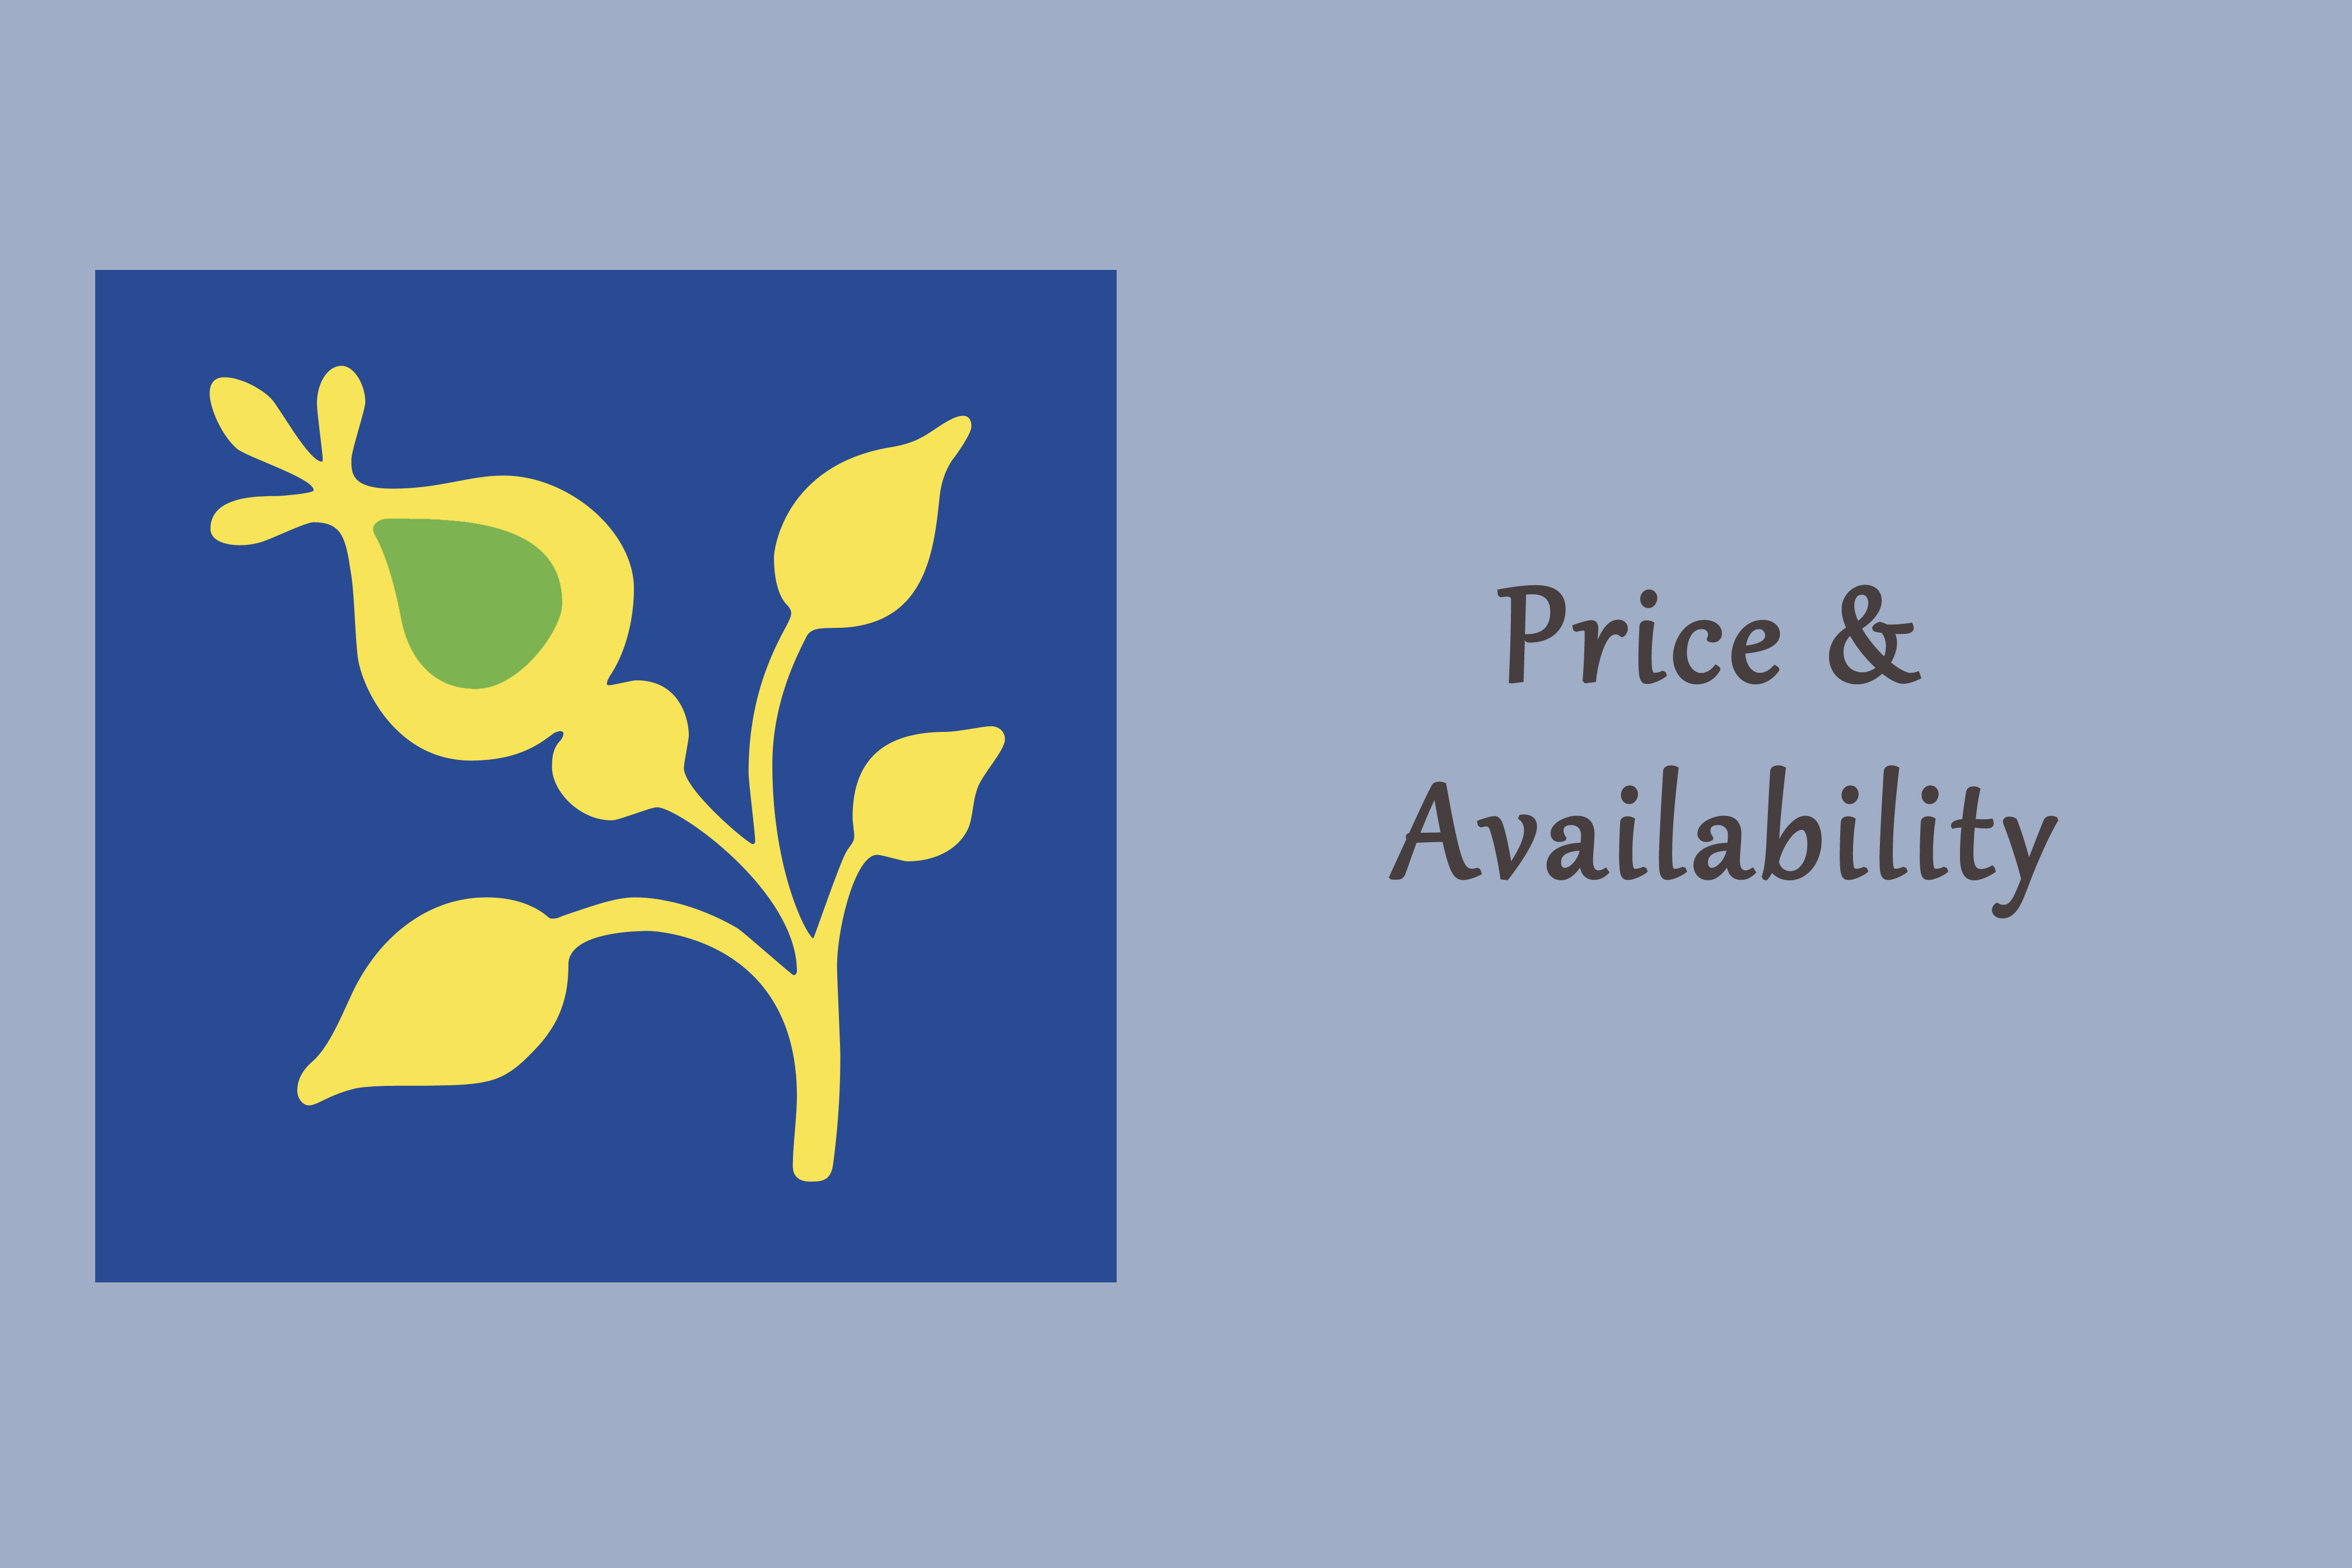 Price & Availability